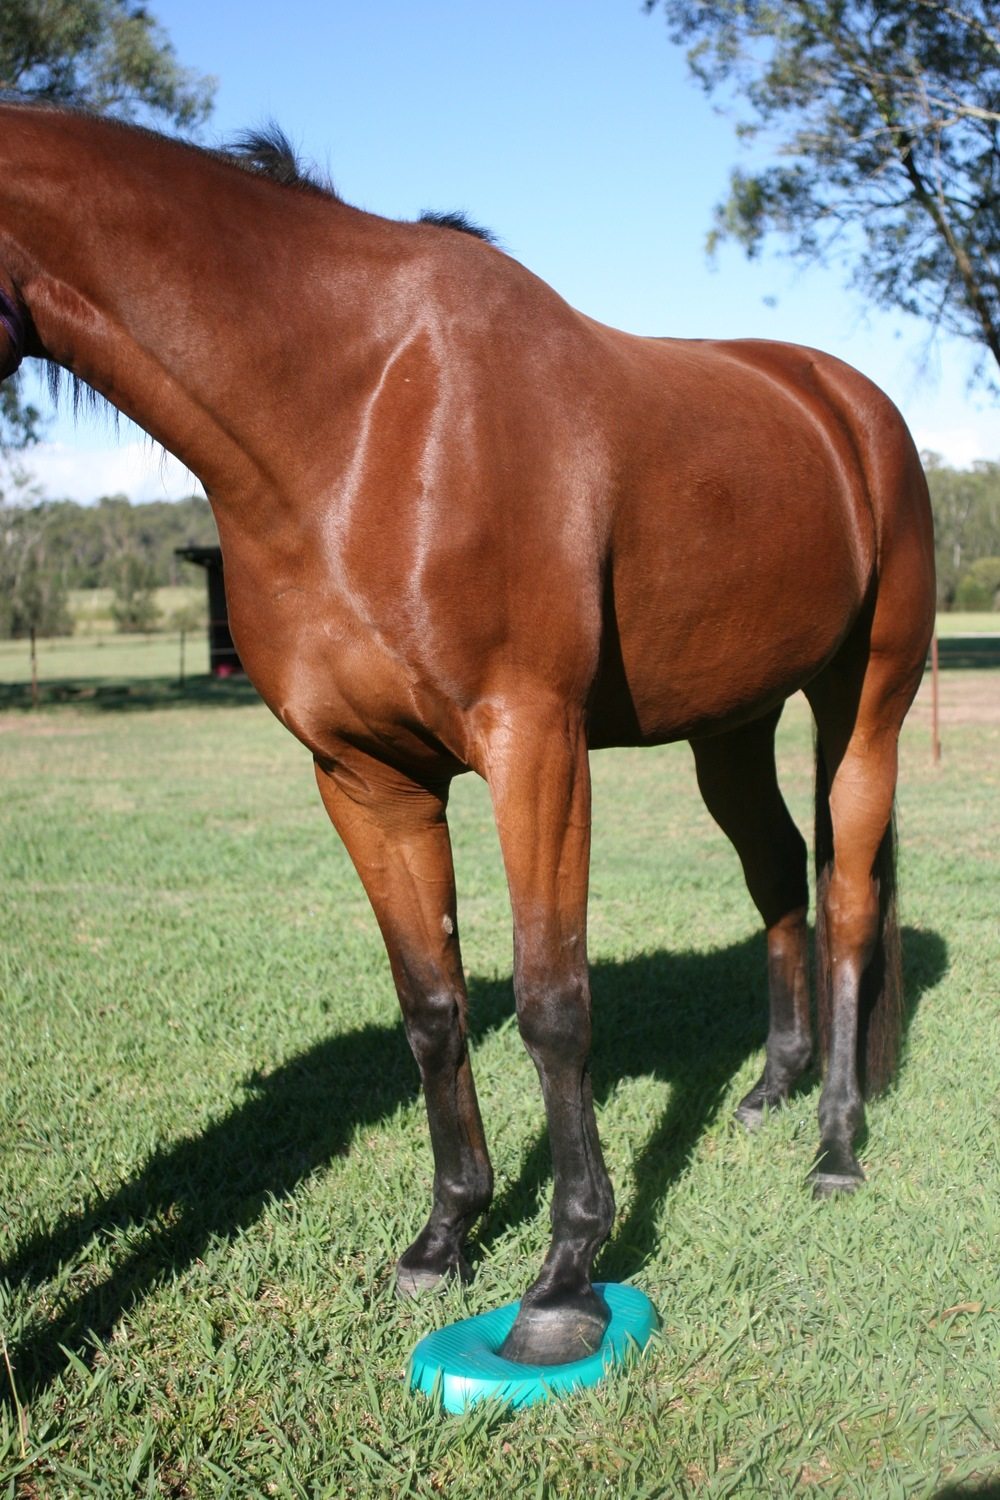 The use of stability discs are a great tool to help improve the horse's proprioception and balance. Proprioception refers to the ability to sense stimuli arising within the body regarding position, motion and equilibrium.